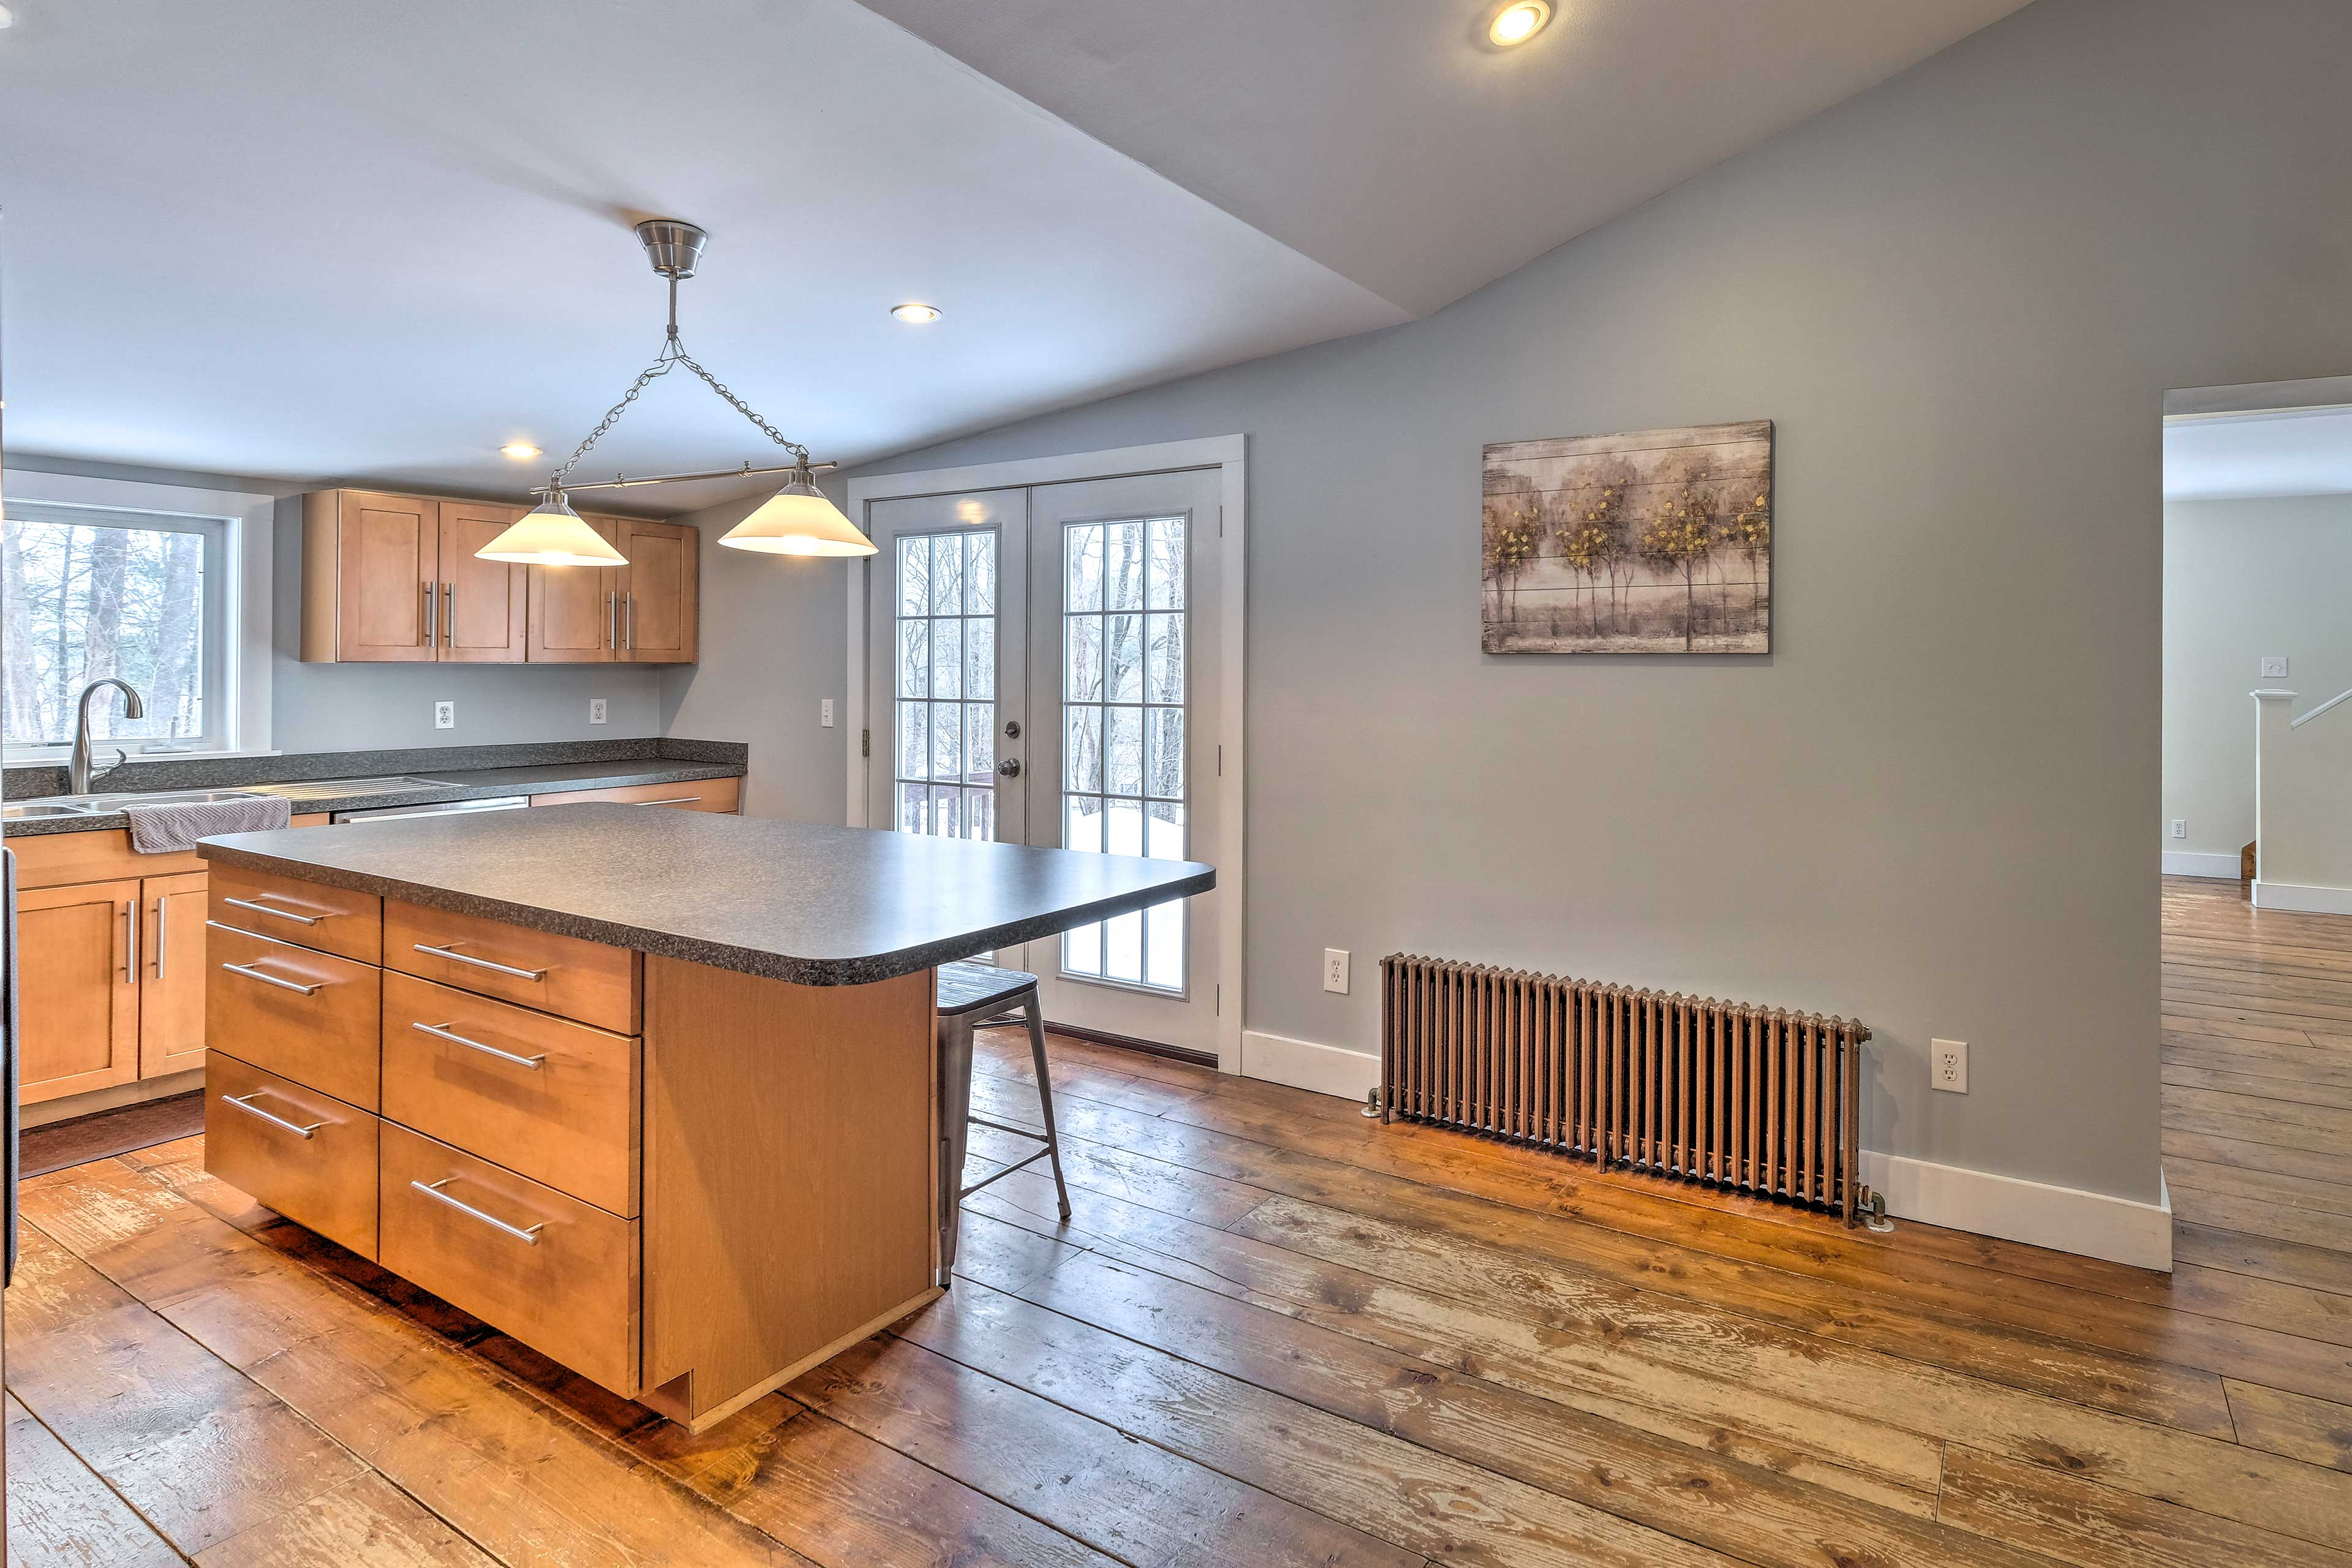 The spacious kitchen provides an island countertop, great for meal prepping!